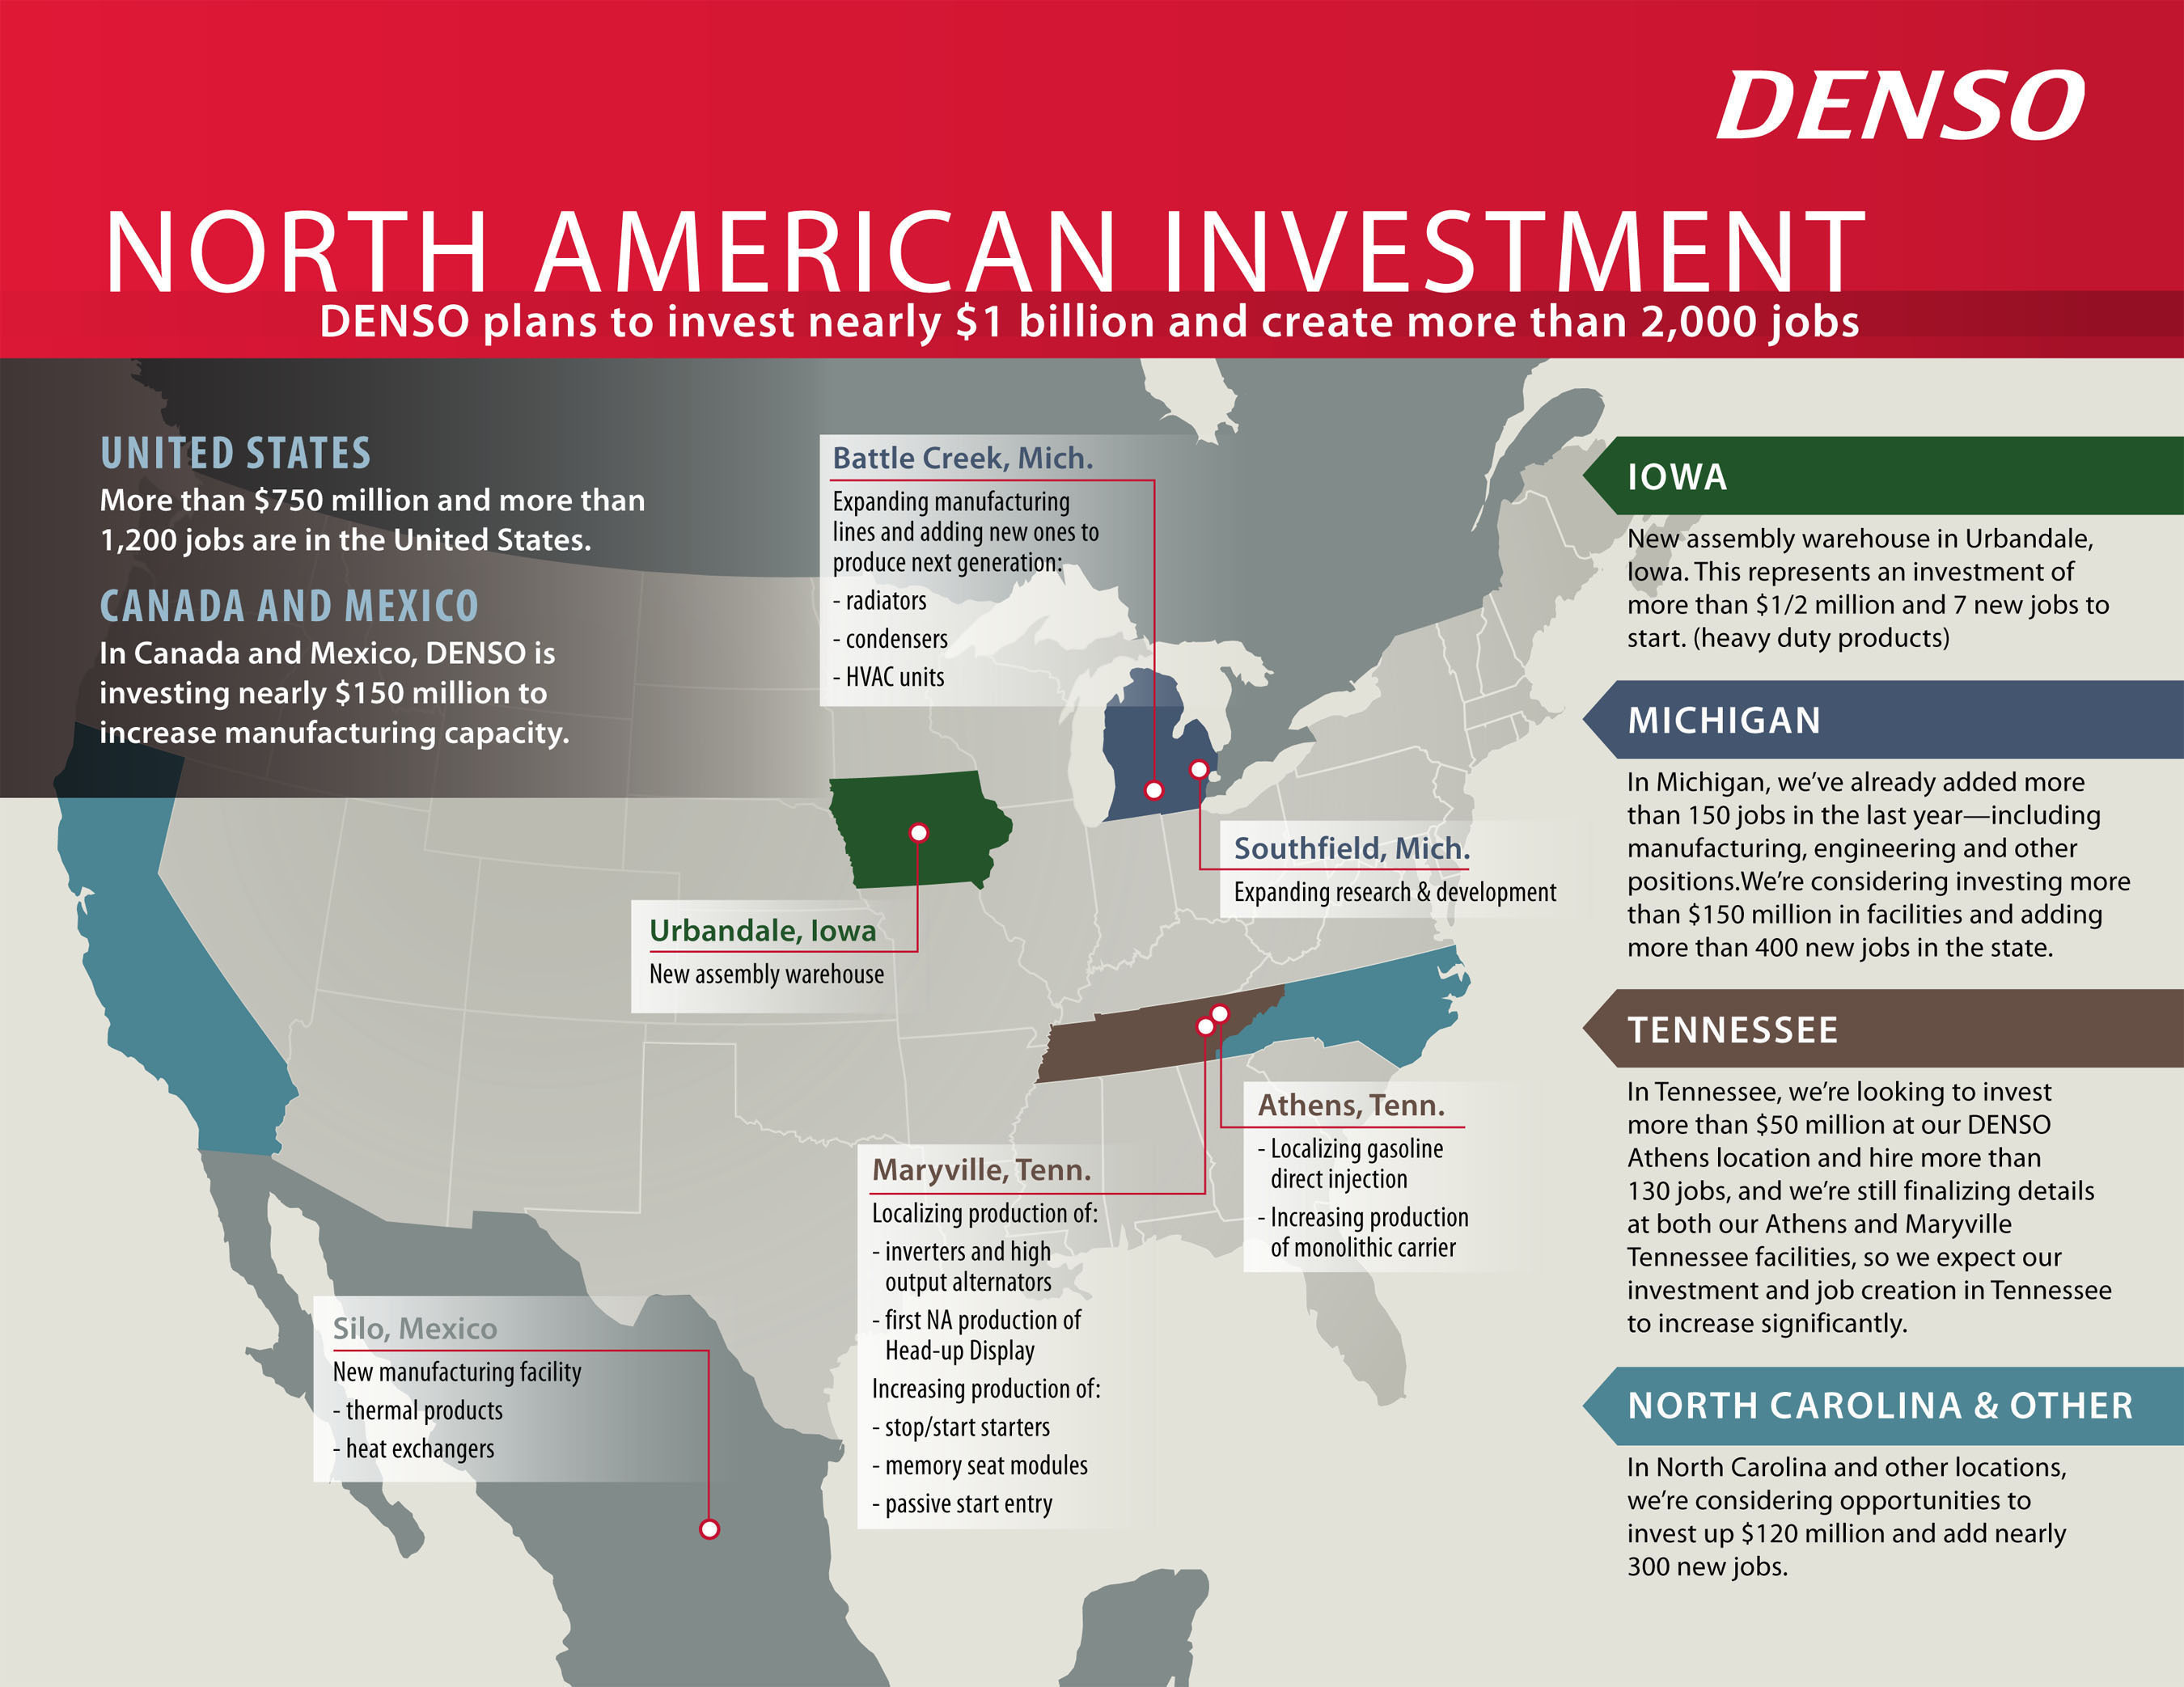 DENSO plans to invest nearly $1 billion and create more than 2,000 jobs in North America.  (PRNewsFoto/DENSO Corporation)